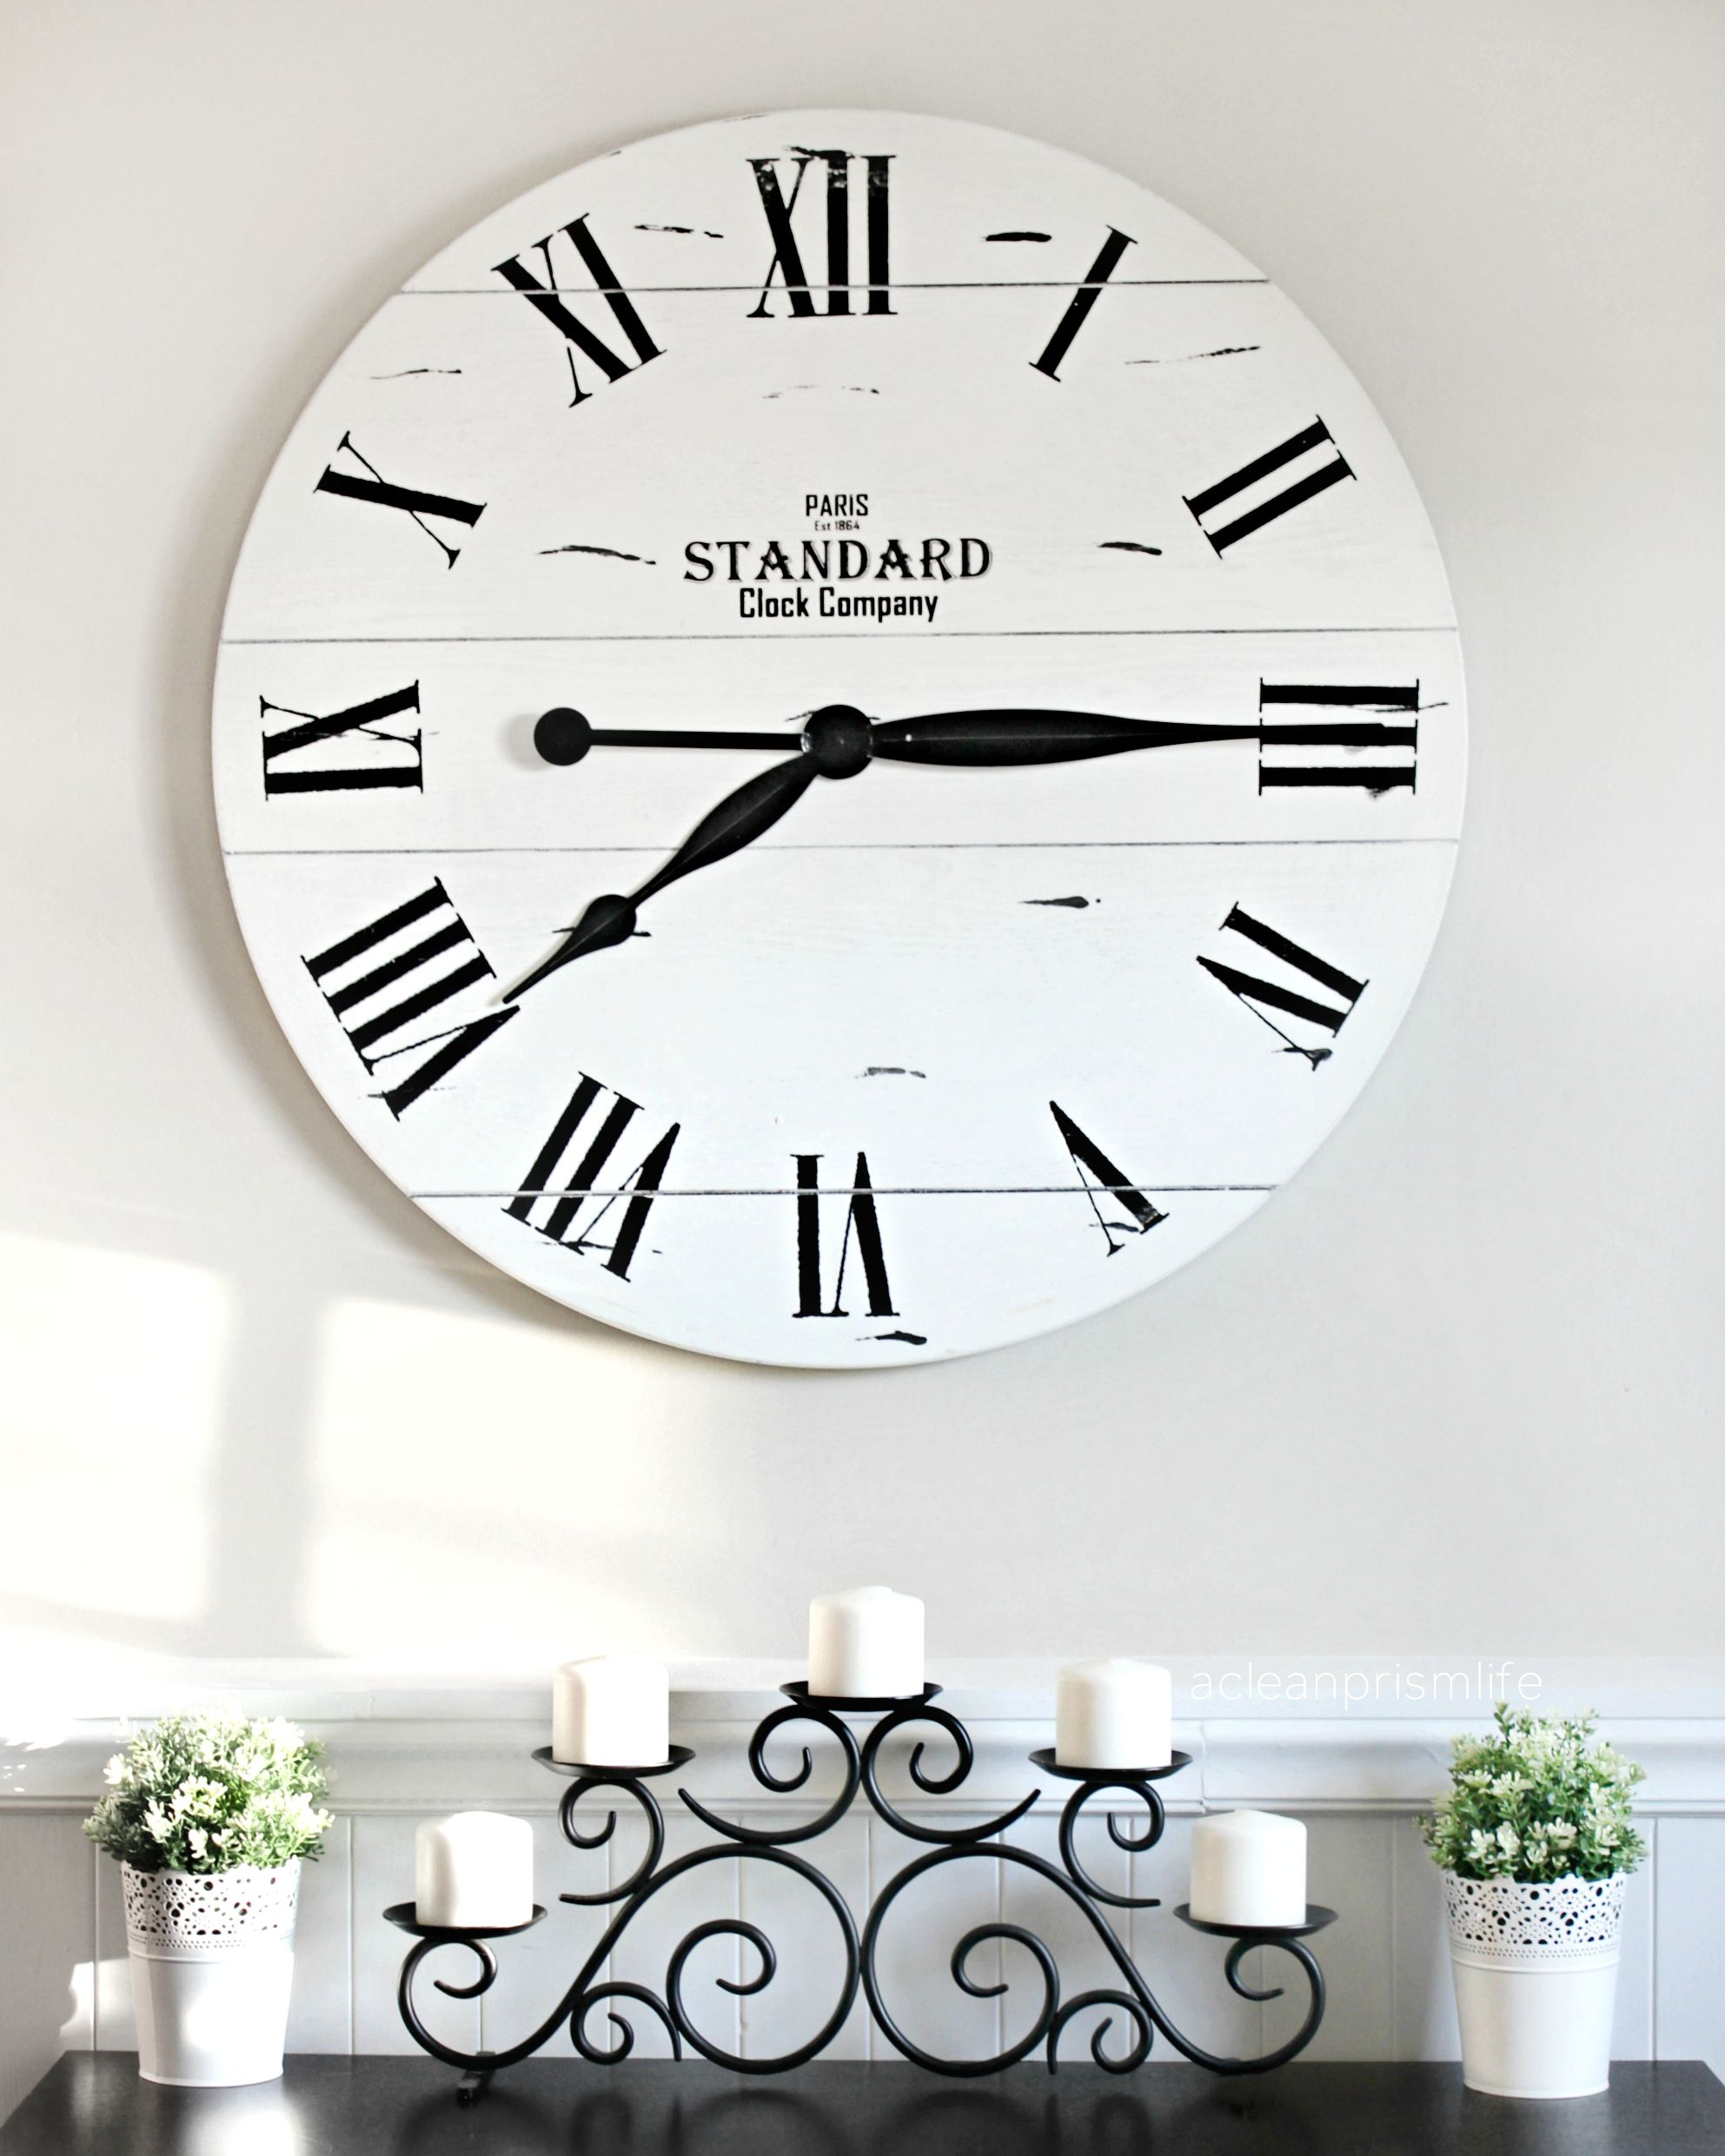 Kirklands clock shiplap black white decor farmhouse style big kirklands clock shiplap black white decor farmhouse style big clocks ikea plants acleanprismlife amipublicfo Gallery